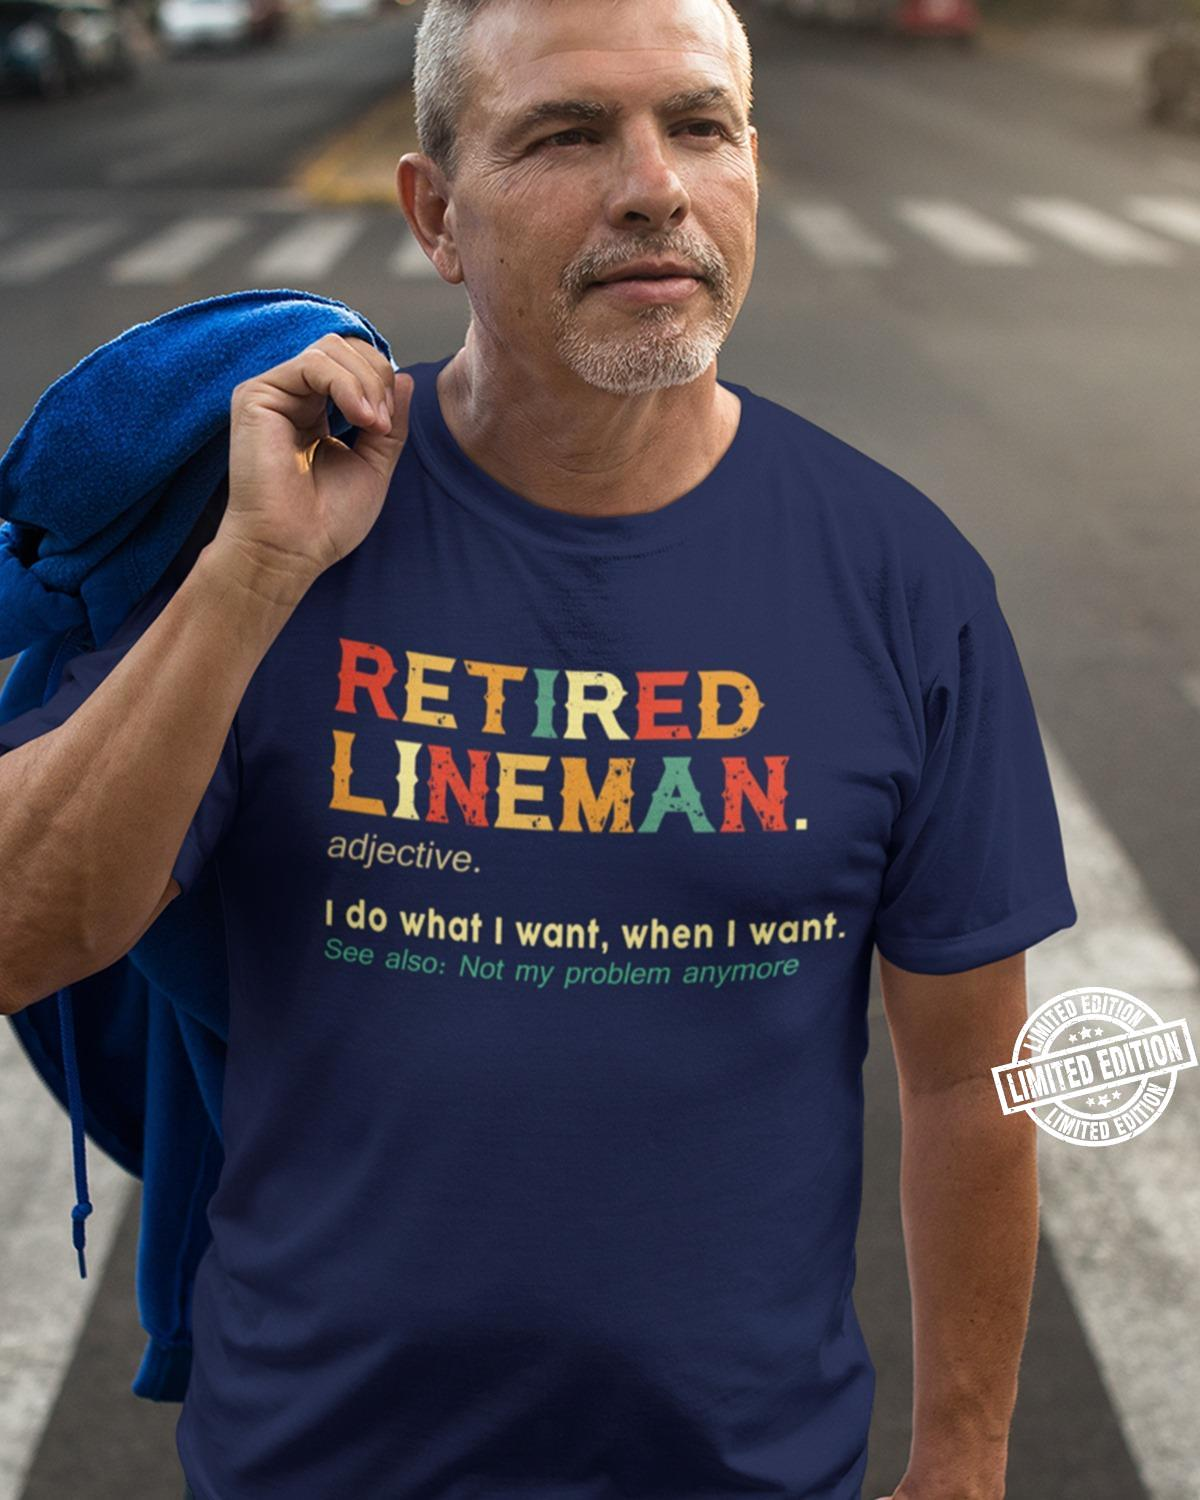 Retired lineman I do what I want when I want shirt